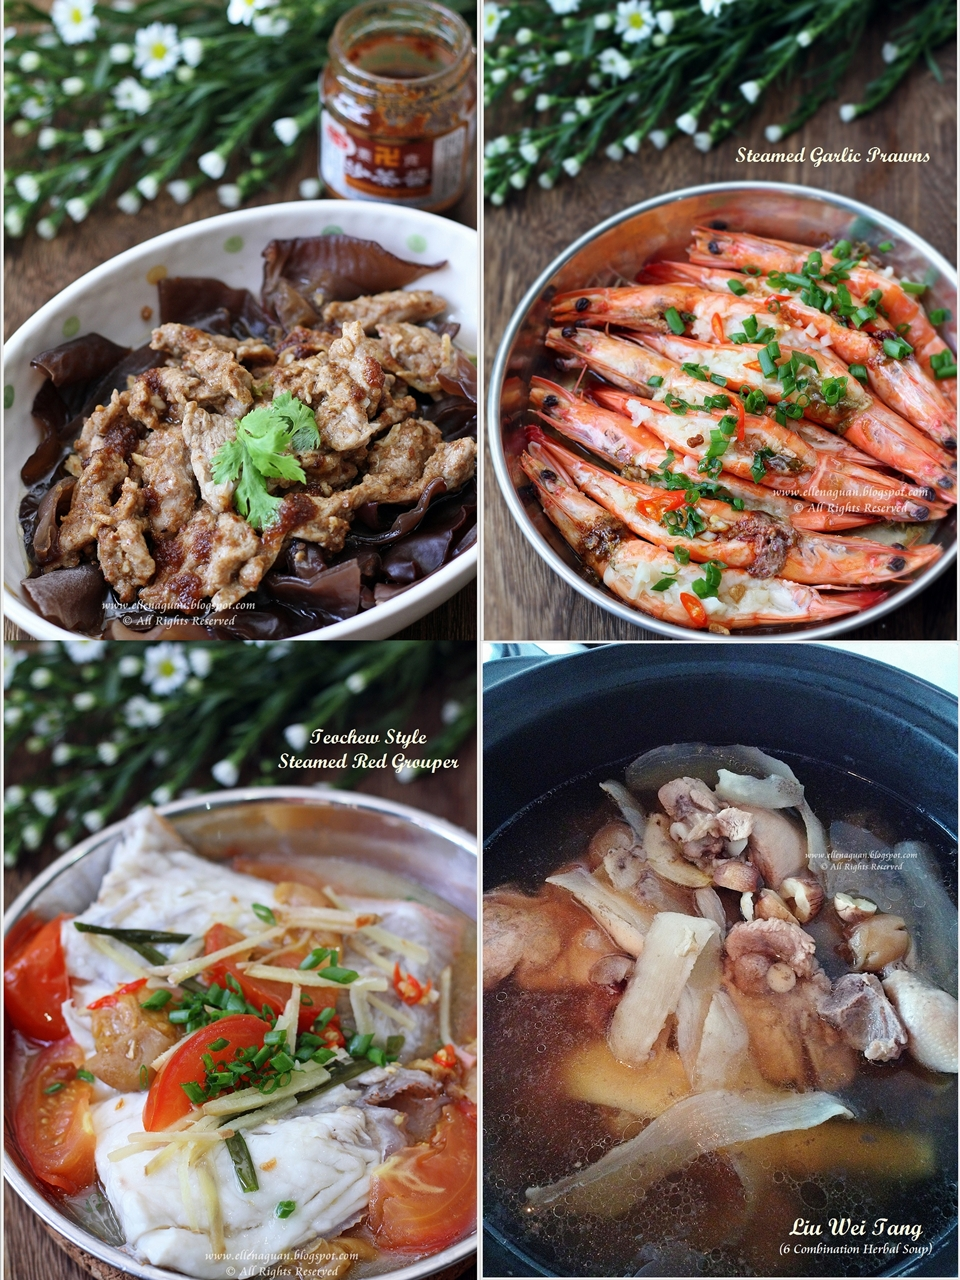 Cuisine paradise singapore food blog recipes reviews and travel quick recipes on 3 dishes 1 soup forumfinder Image collections